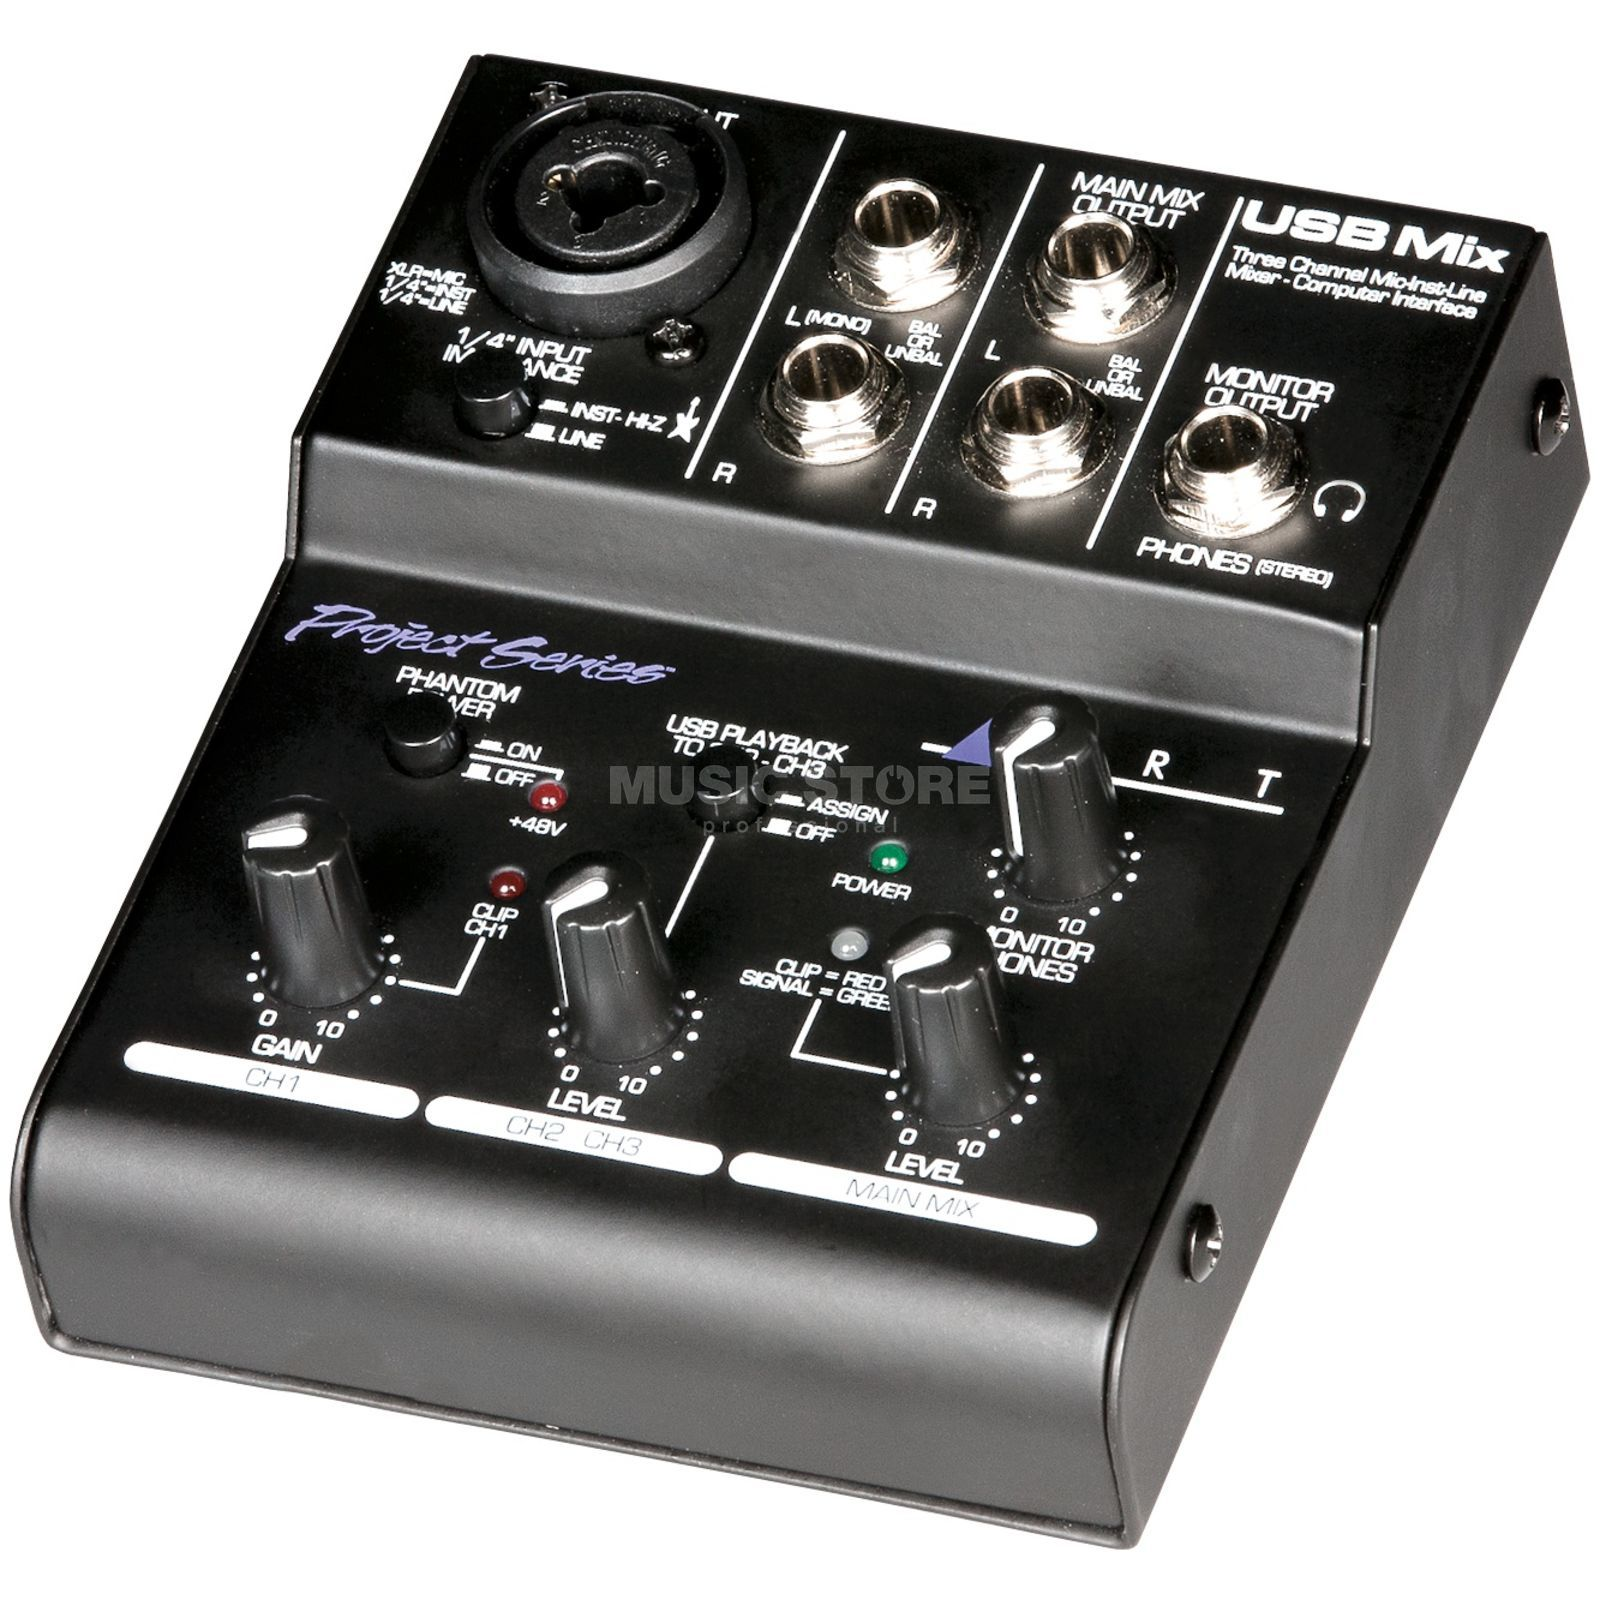 ART Applied Research & Technology USB Mix - MiniMixer with USB2.0 and Phantom Power Produktbillede